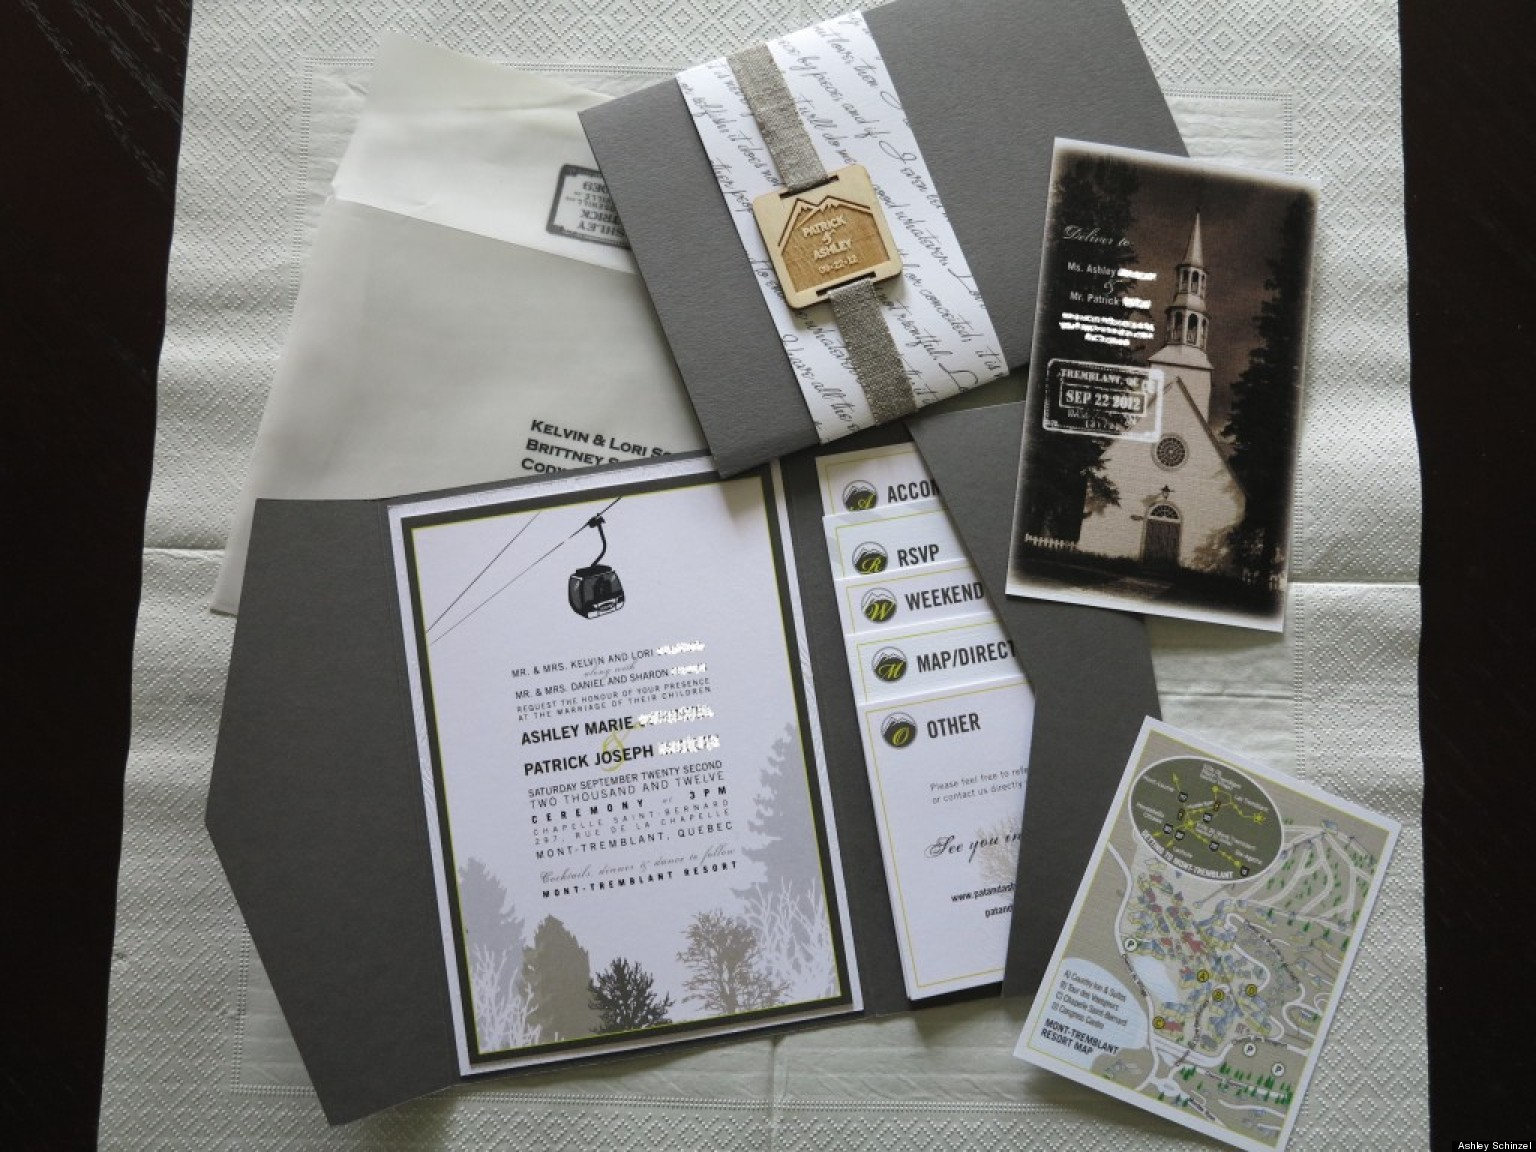 Gifts Using Wedding Invitation: Wedding Invitation Ideas From Real Weddings (PHOTOS